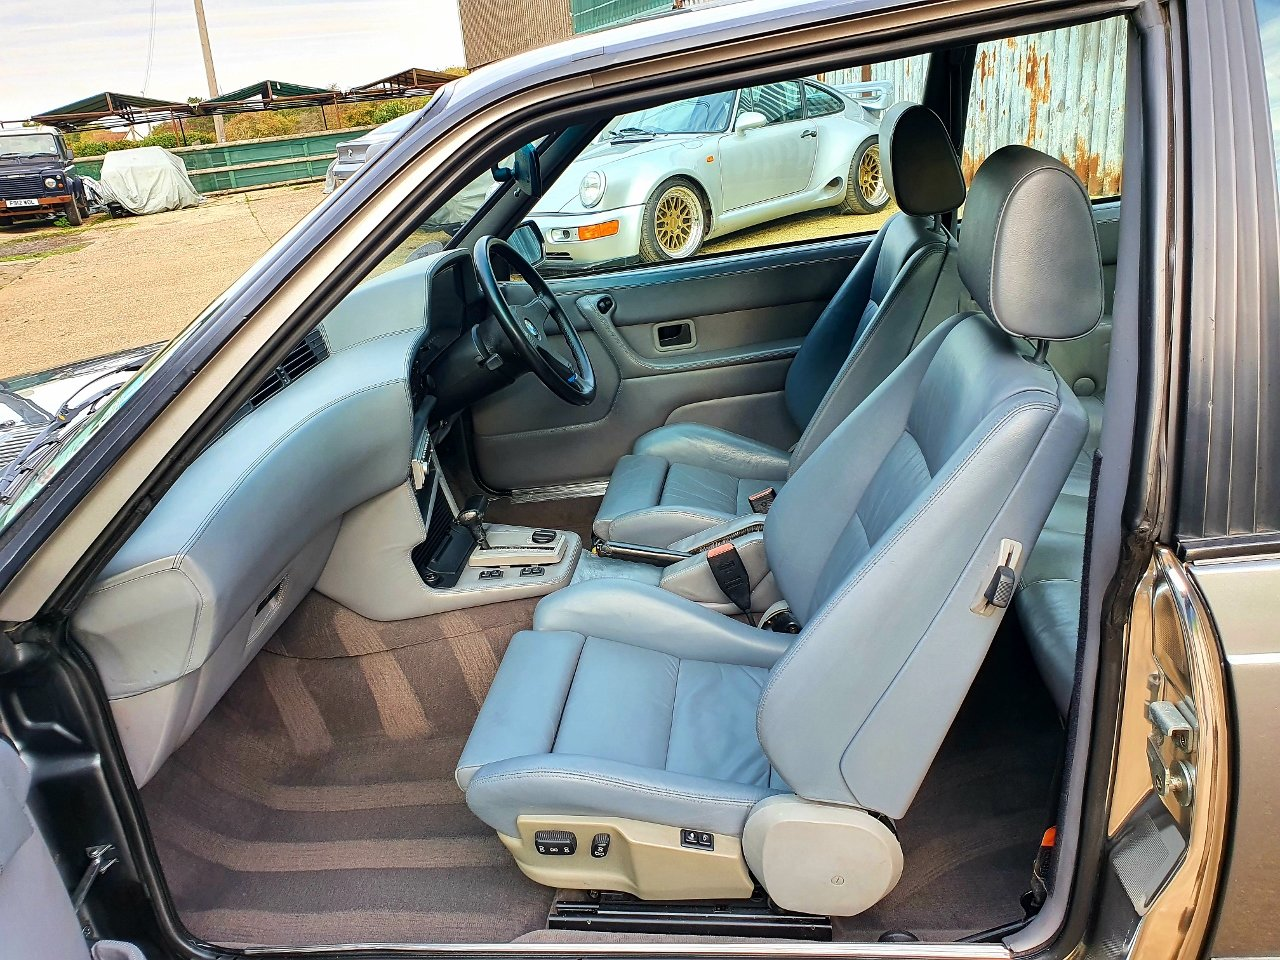 1989 Only 65,000 Miles - Stunning BMW E24 635 CSI HIGHLINE For Sale (picture 8 of 10)